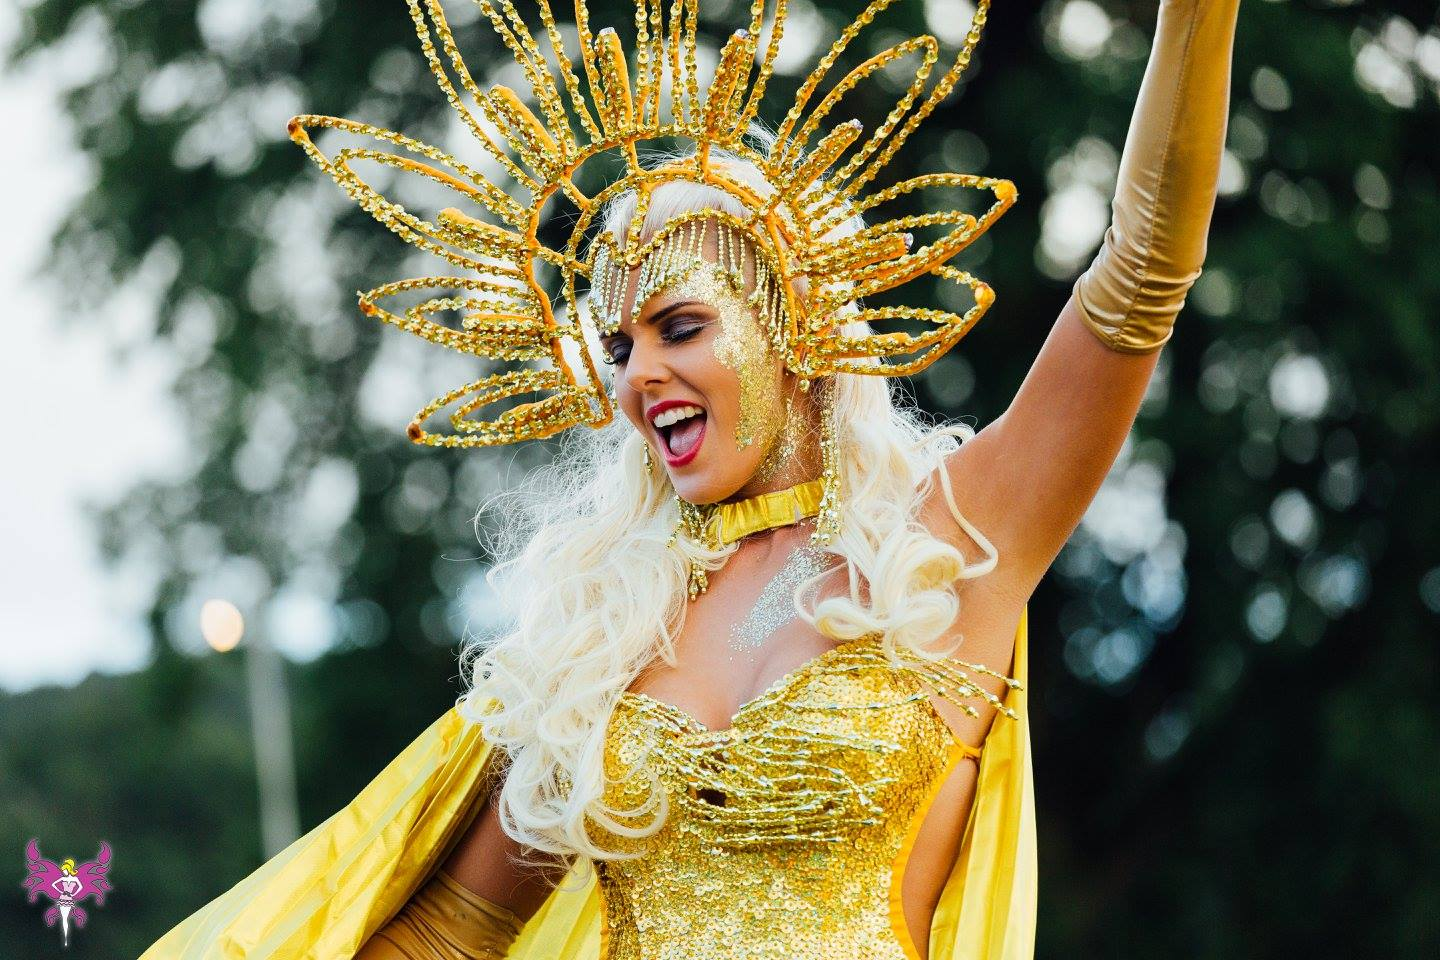 Glitzy Gold Stiltwalker